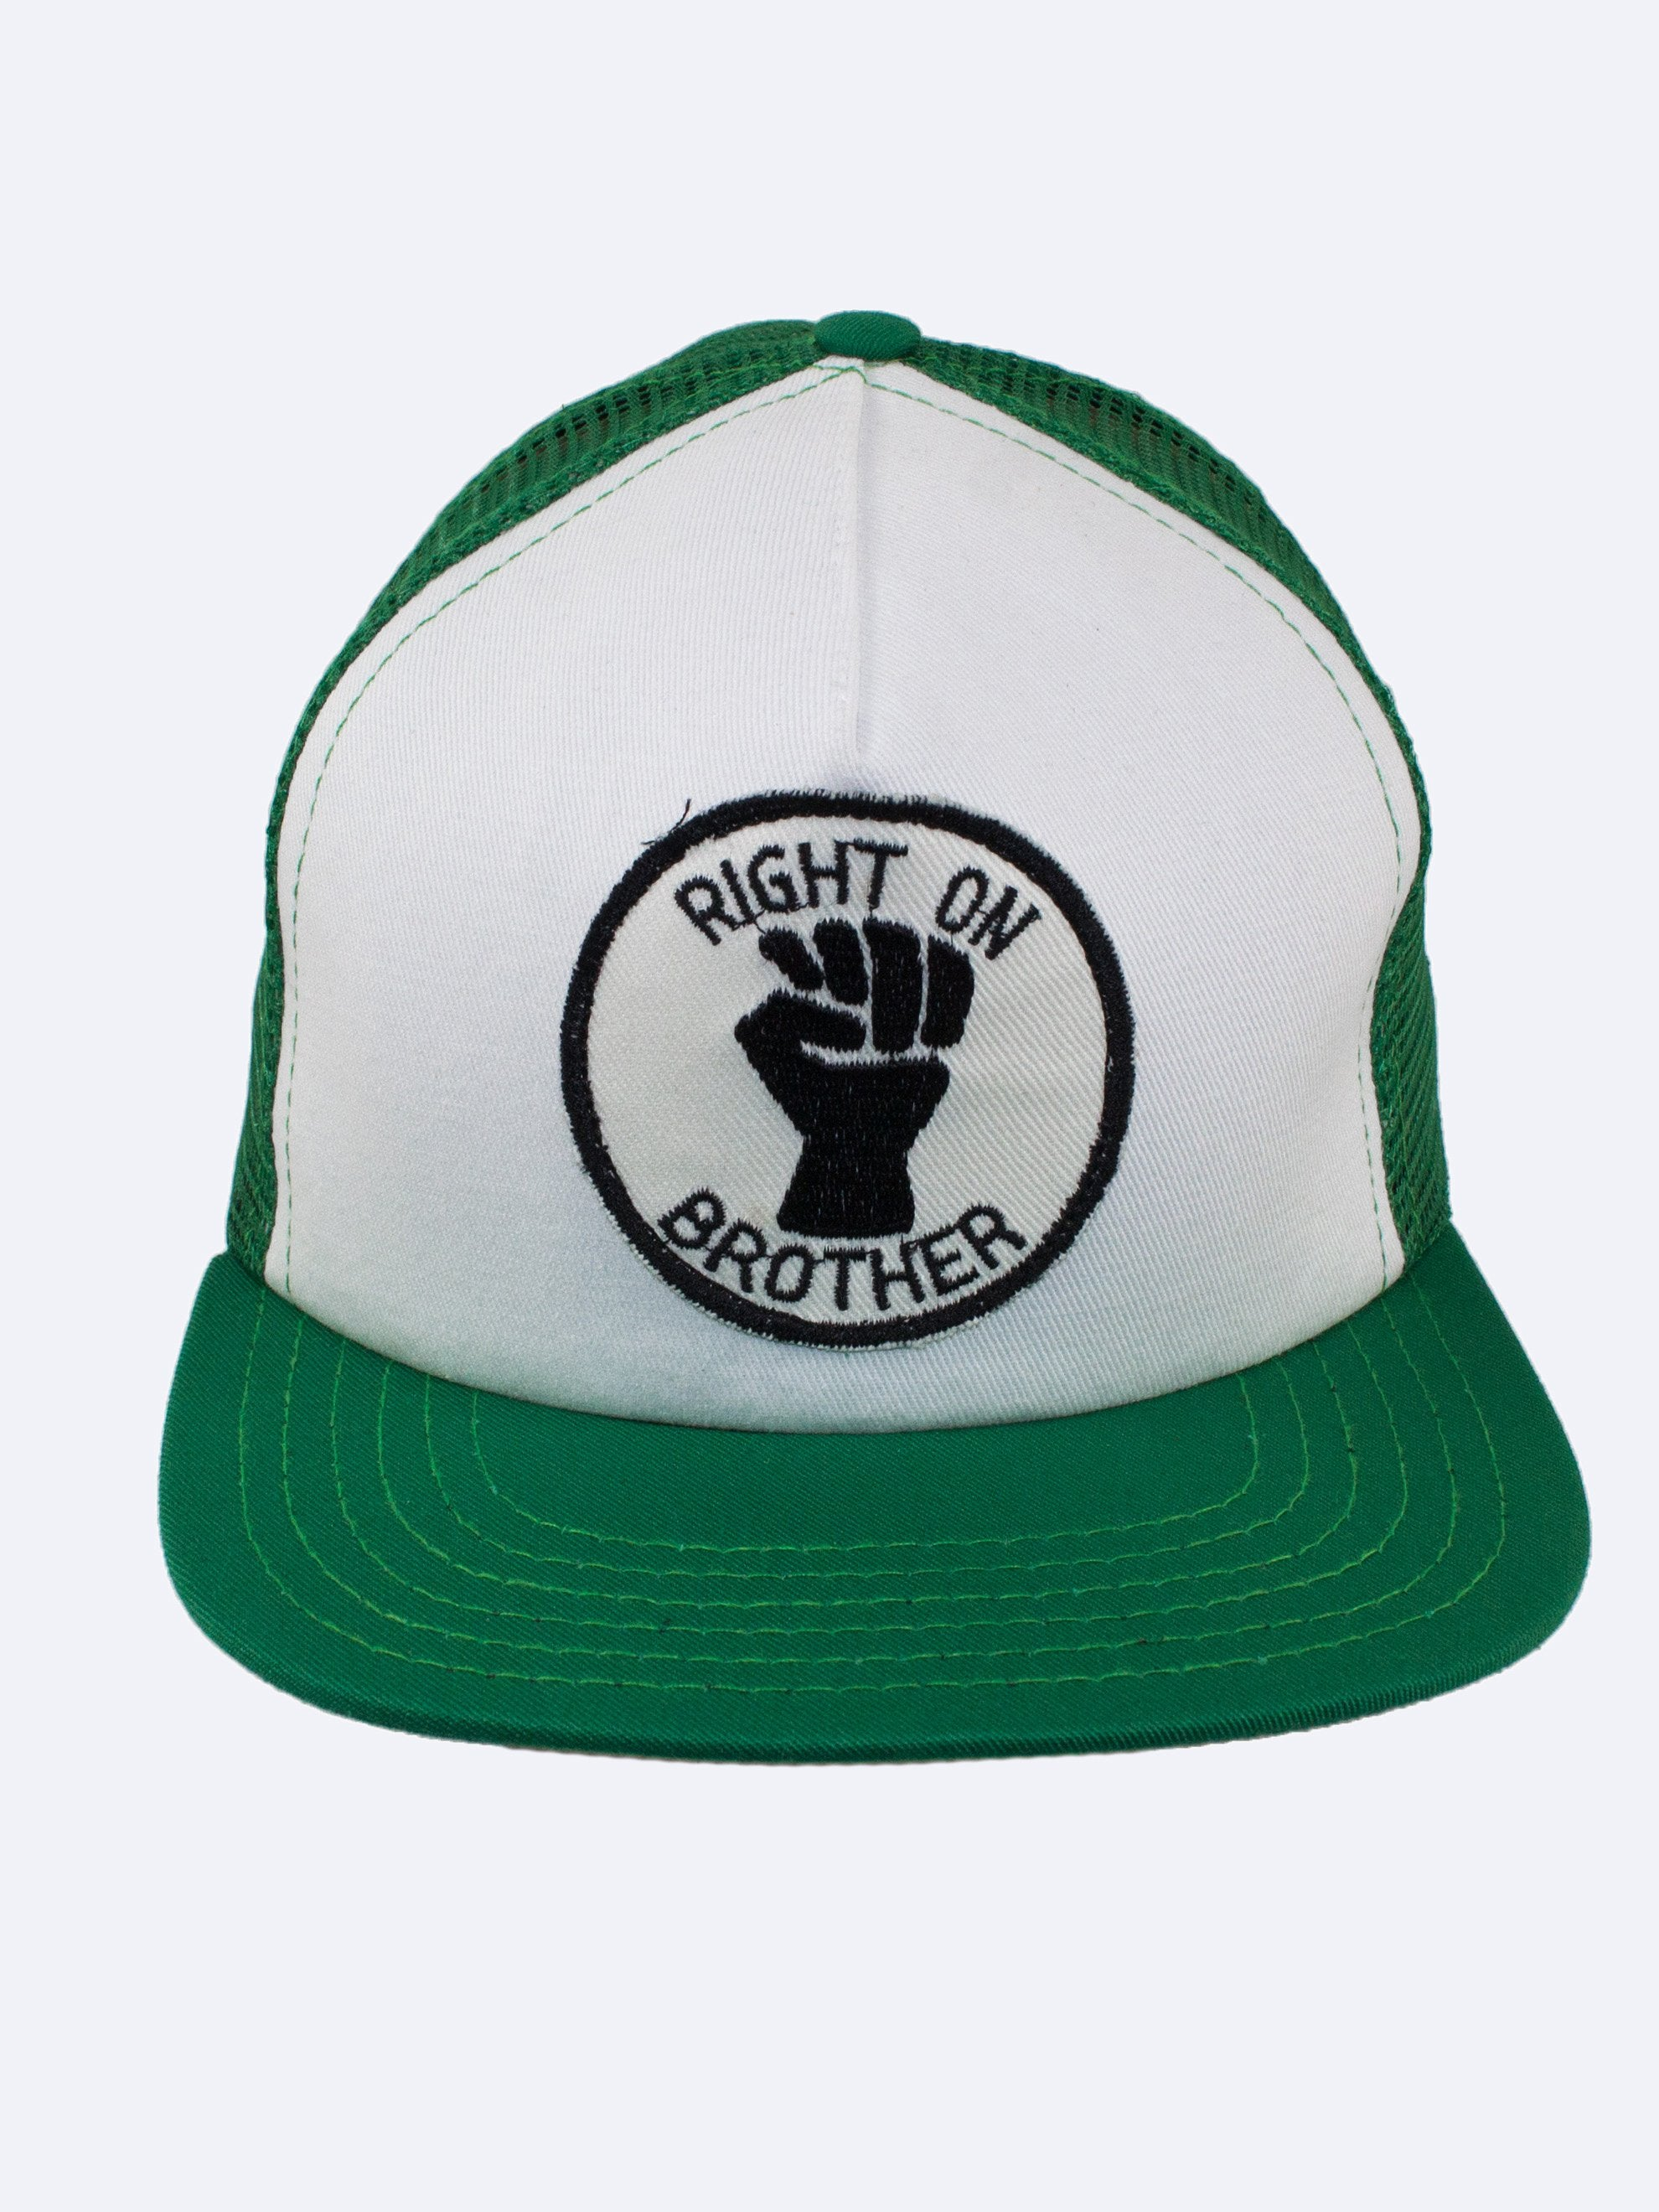 Green Hat/White Patch Right On Brother 1